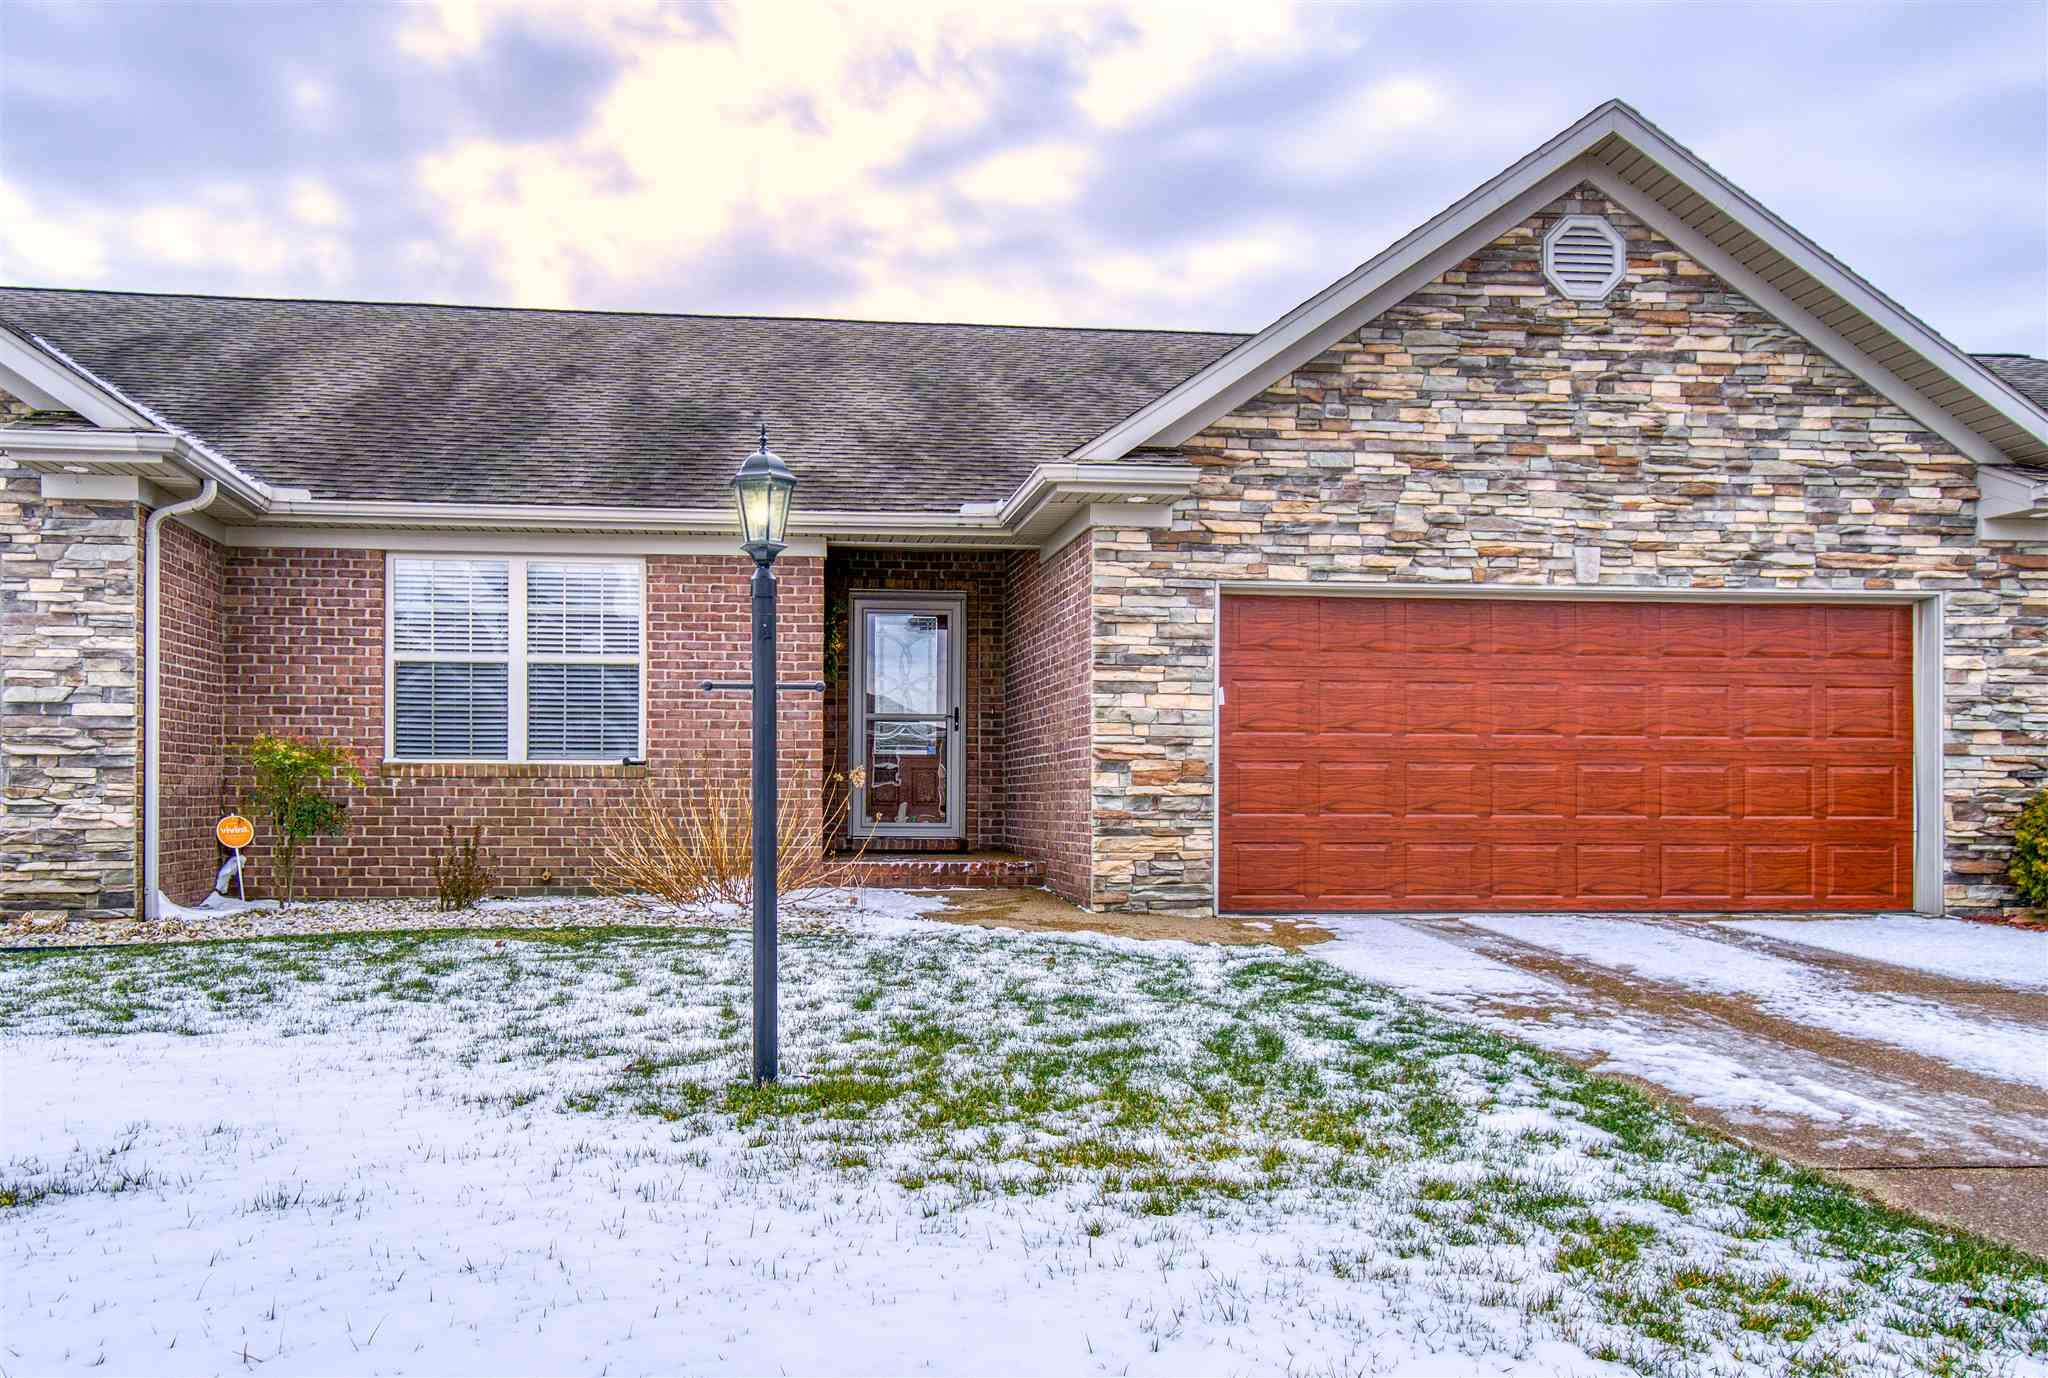 Check out this Newburgh condo on a lake.  This beautiful condo has 2 bedrooms, 2 full bathrooms, great room. large eat in kitchen and sun room.  The master bedroom has a walk in closet and a master bathroom with a jetted tub and vanity.  The kitchen has stainless steel appliances, granite counter tops and tile floors.  The sun room is glassed in for 3 season use and opens to the fenced yard.  This is a great area to read and watch the ducks on the lake.  There is also a laundry room and 2 car attached garage.